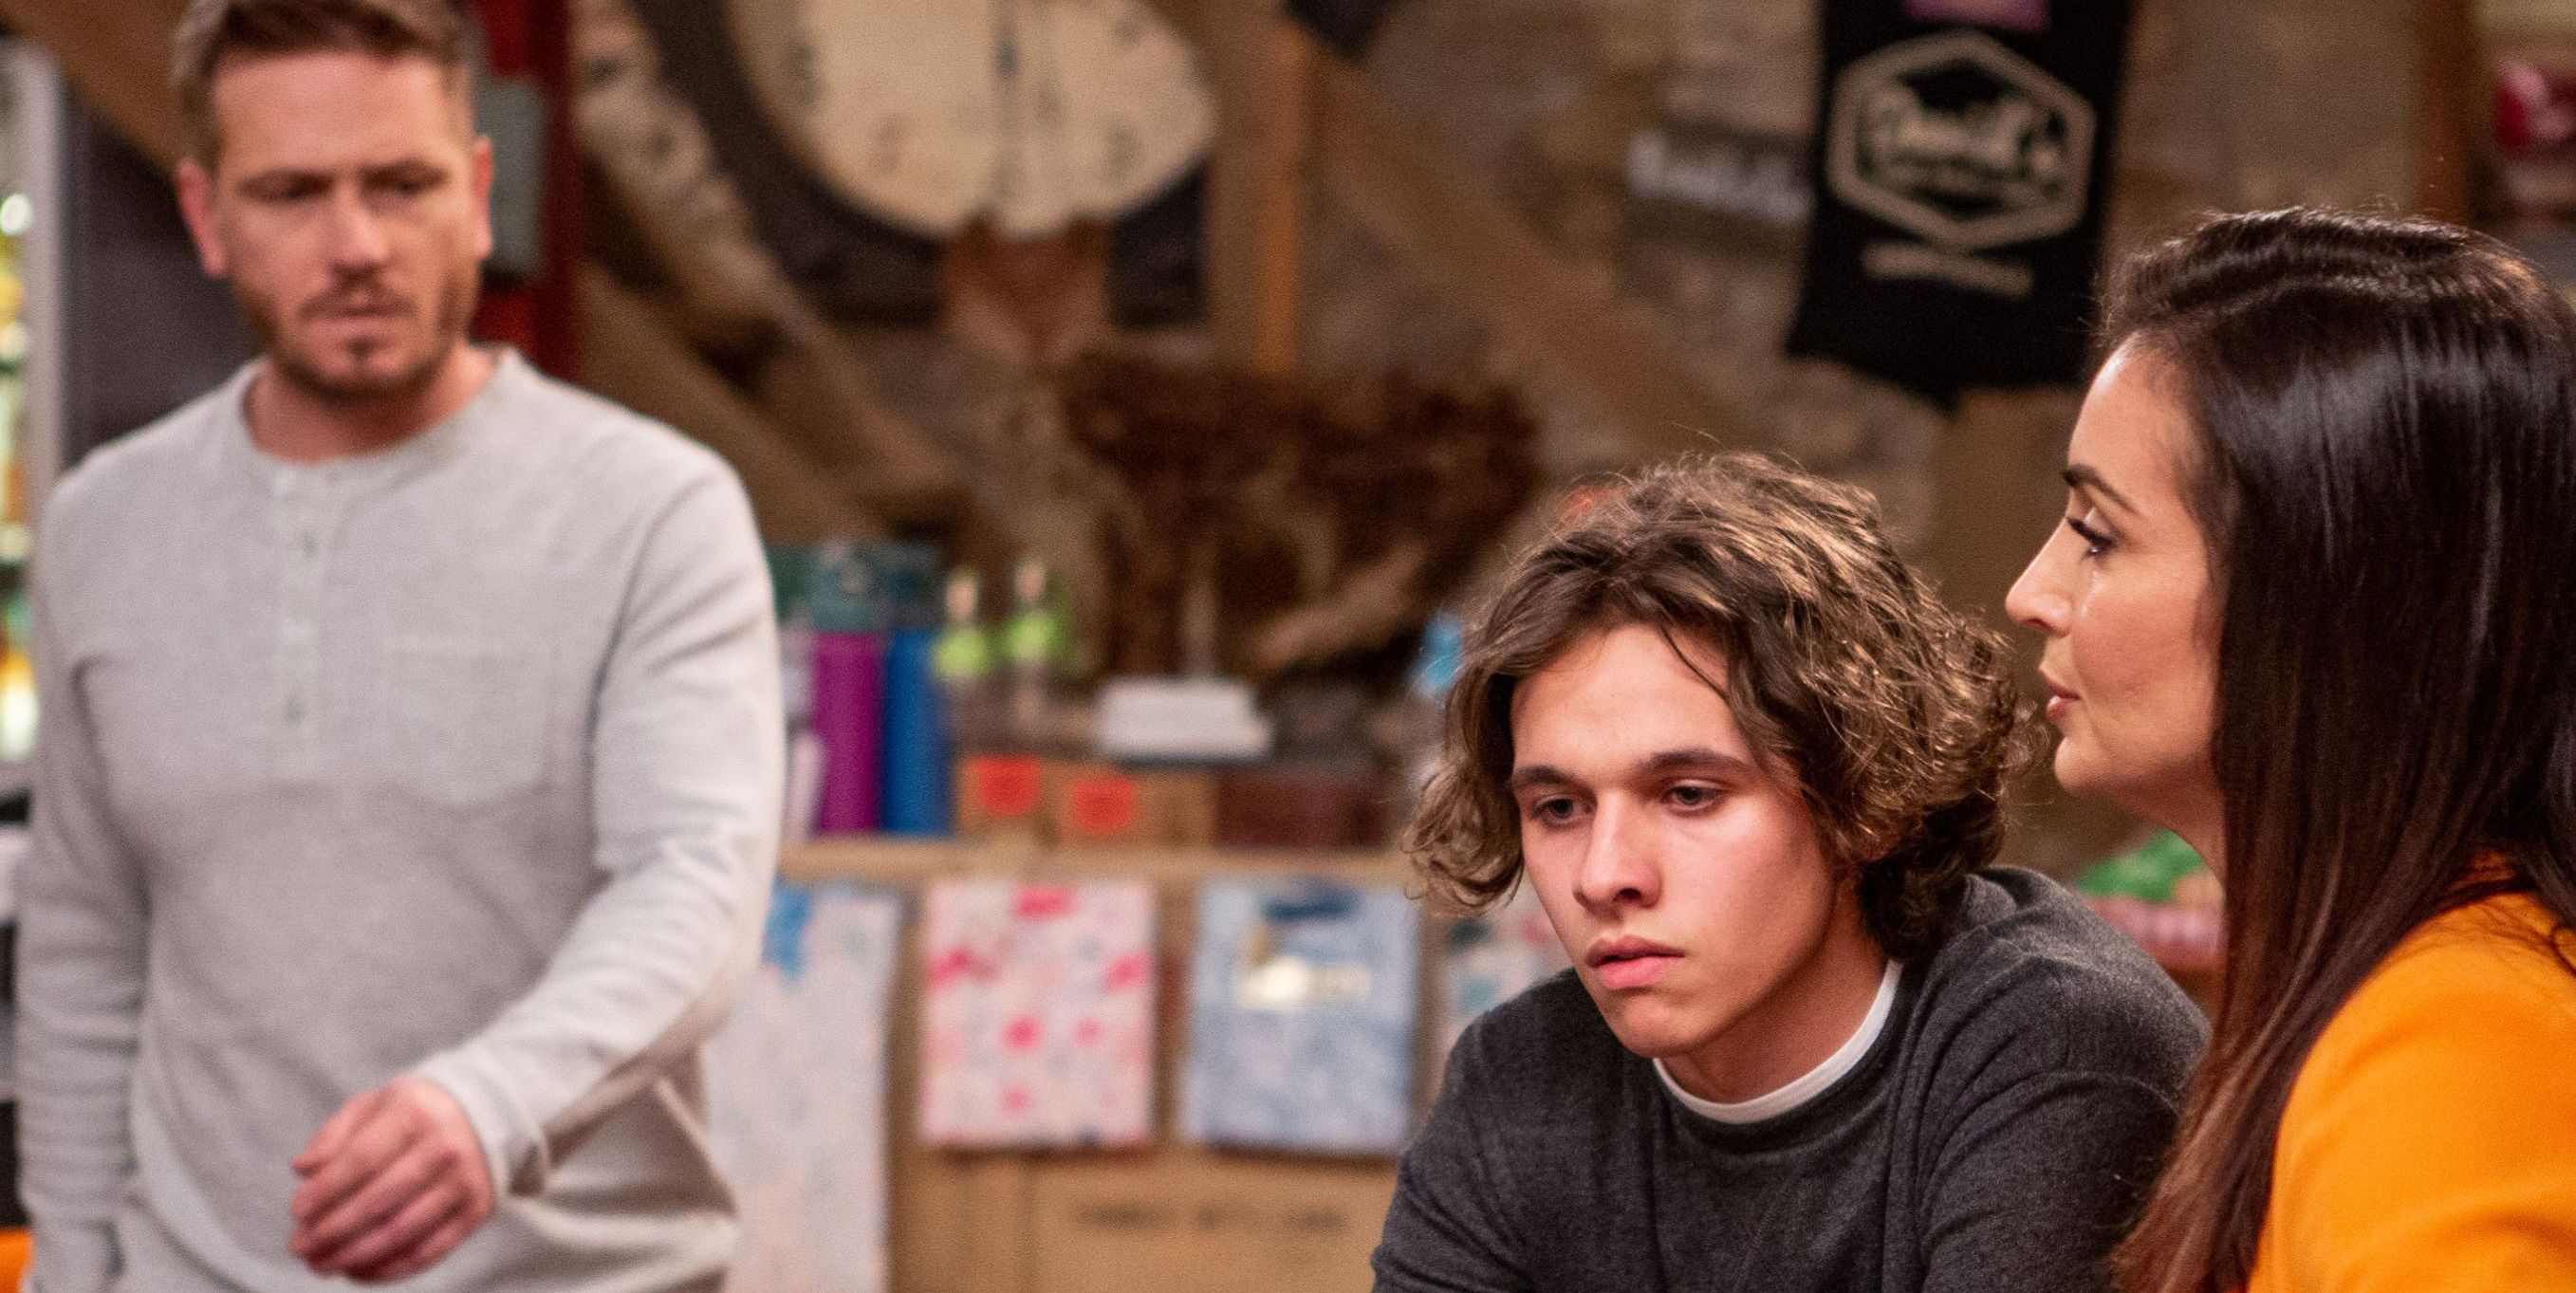 David Metcalfe and Leyla Harding worry about Jacob Gallagher in Emmerdale